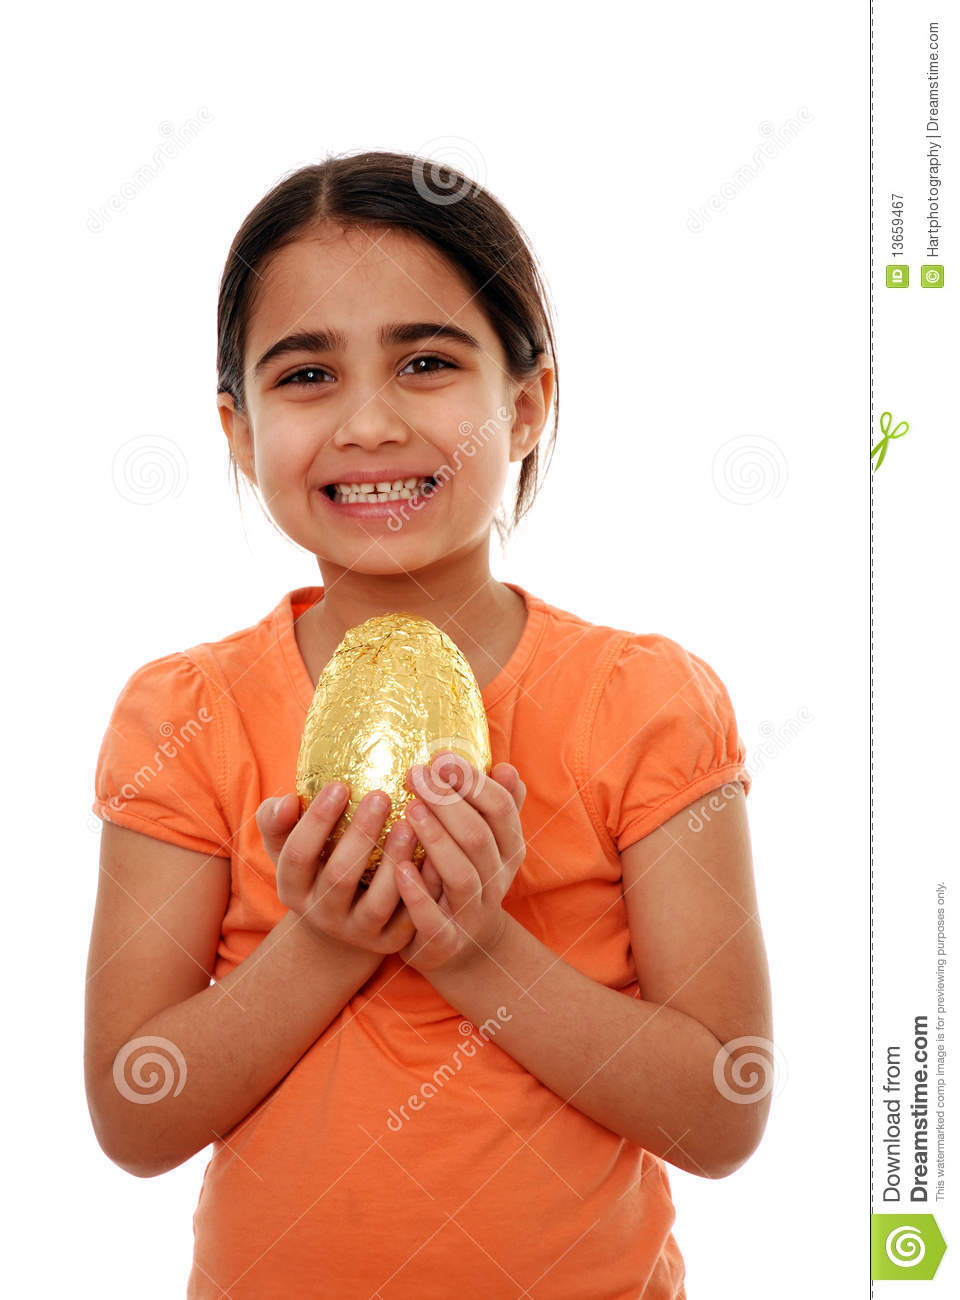 Happy child with Easter egg